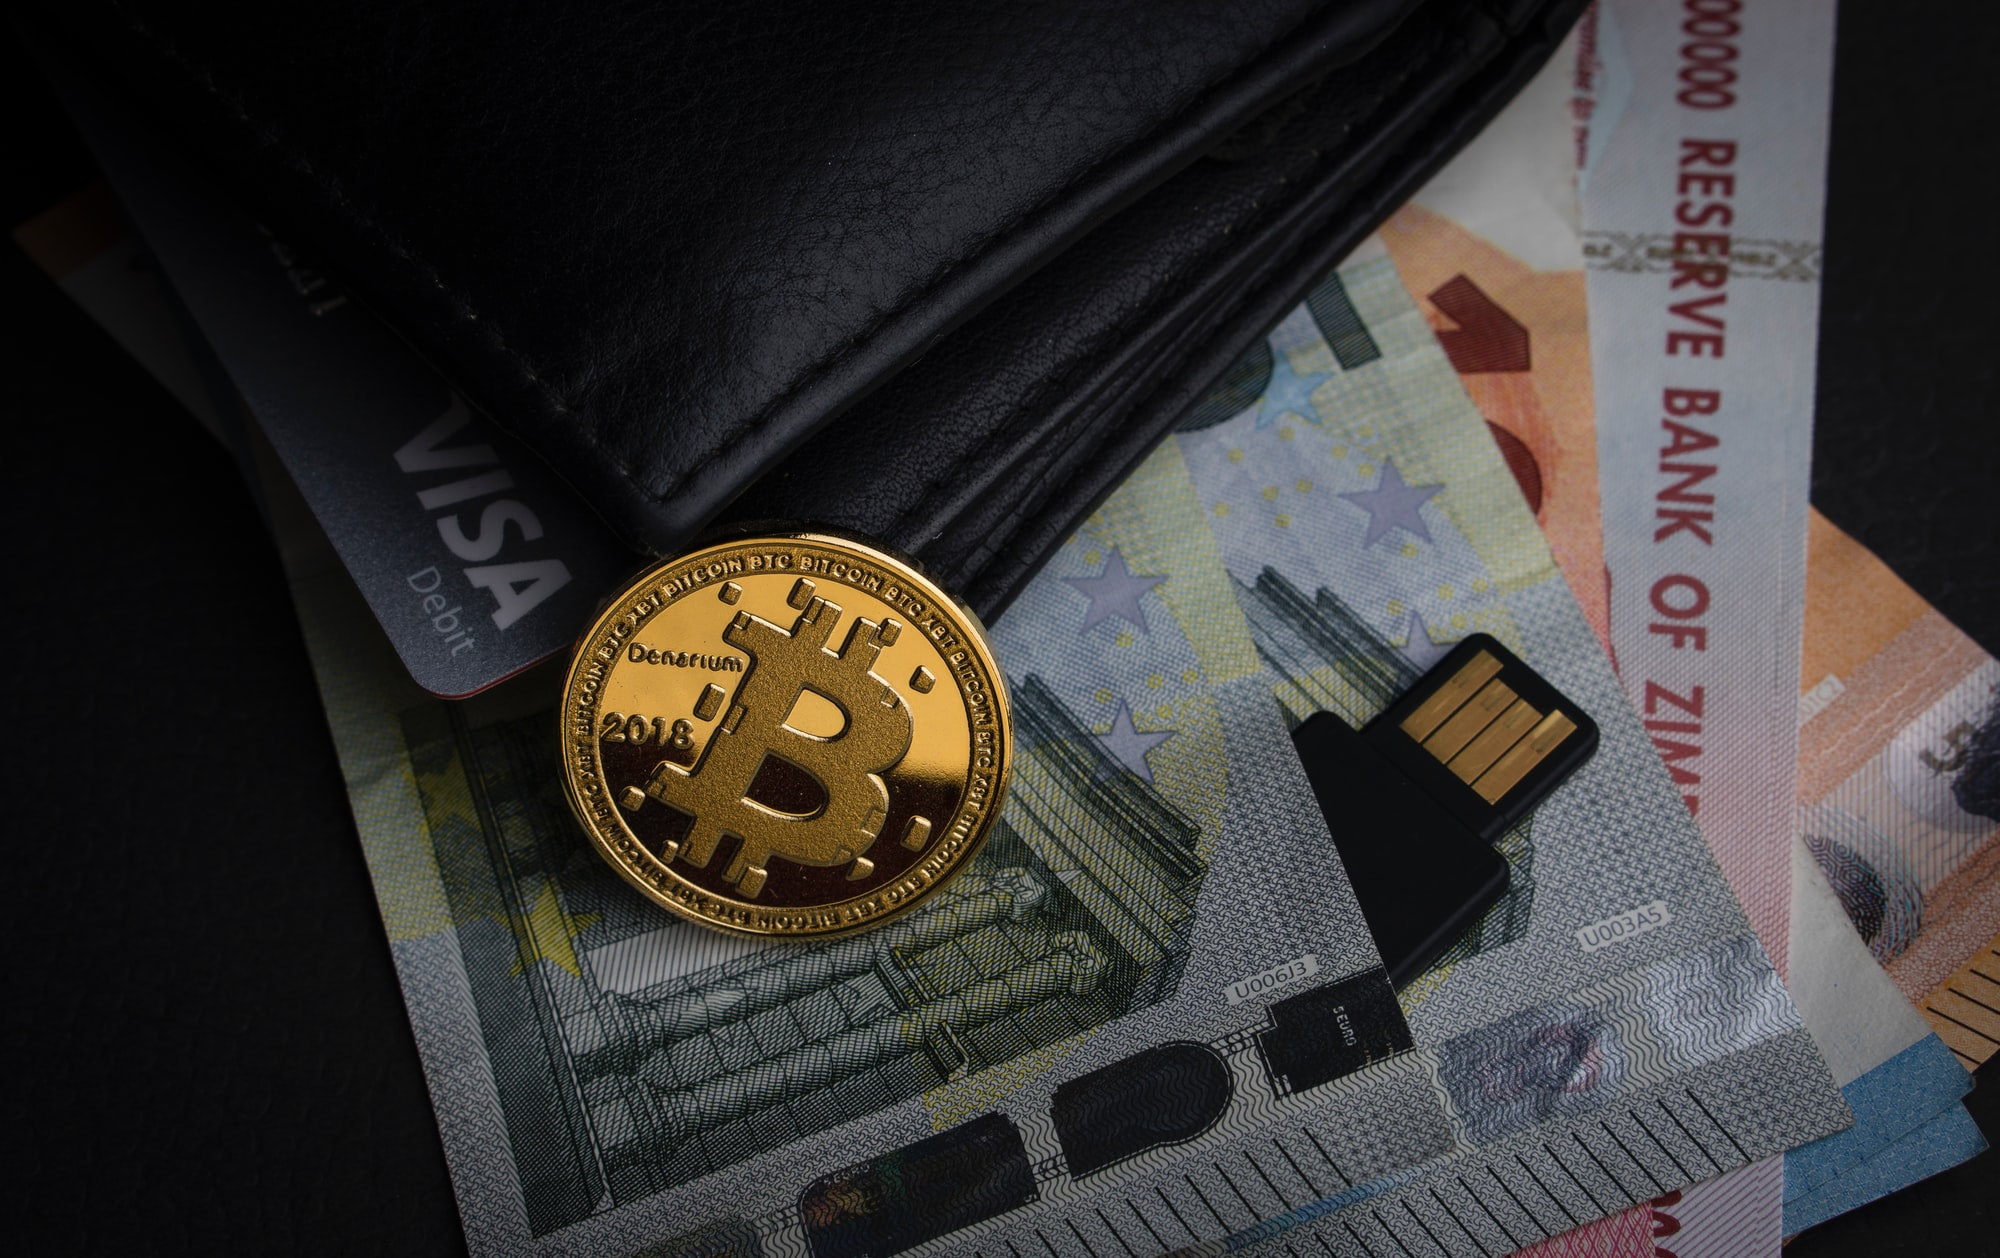 Technical background on Bitcoin DCA: self-hosted tooling for Dollar Cost Averaging with Bitcoin